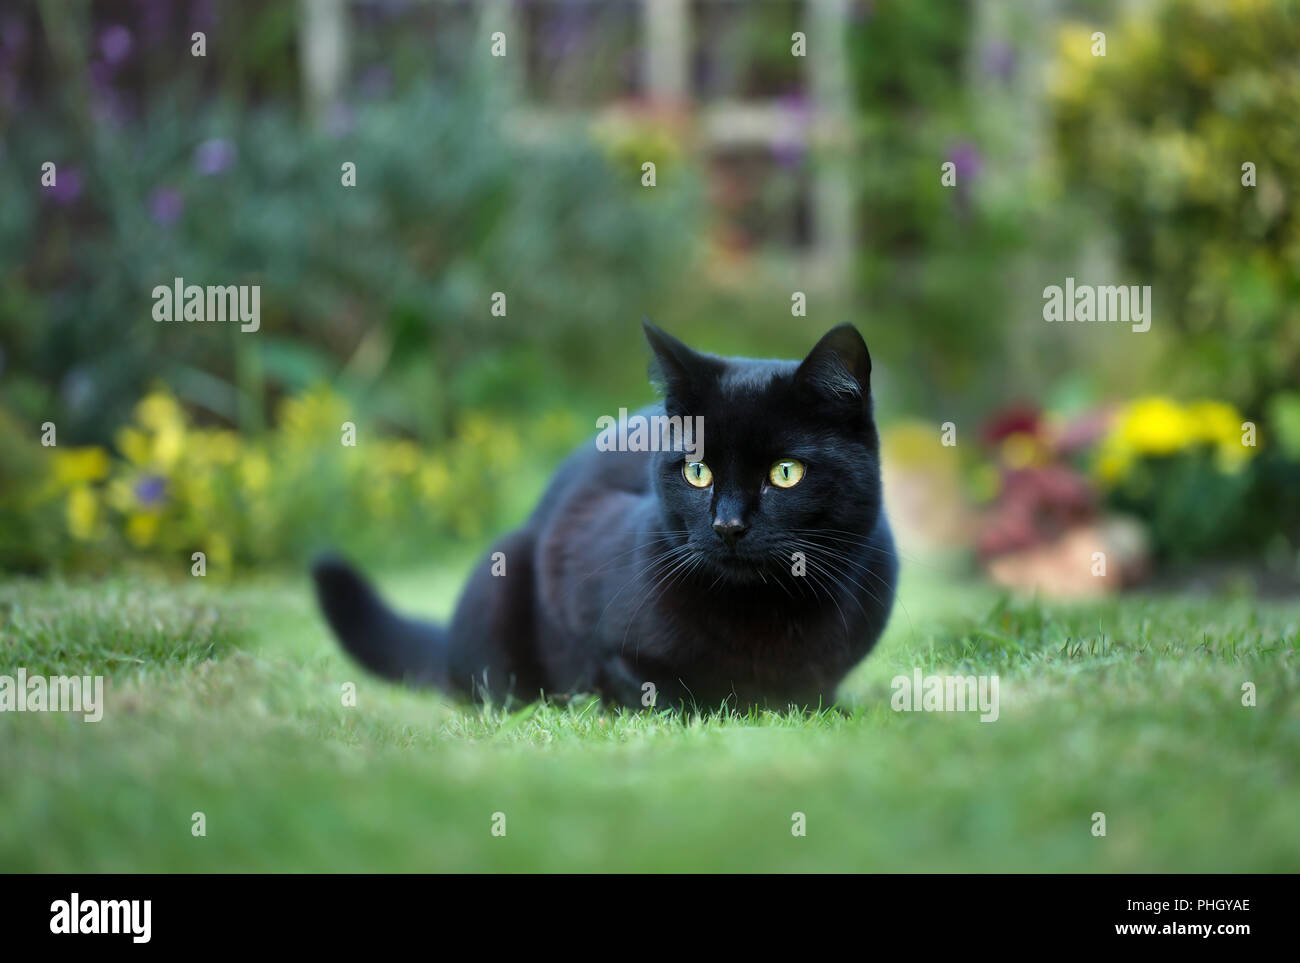 Close up of a black cat on the grass in the back yard, UK. - Stock Image